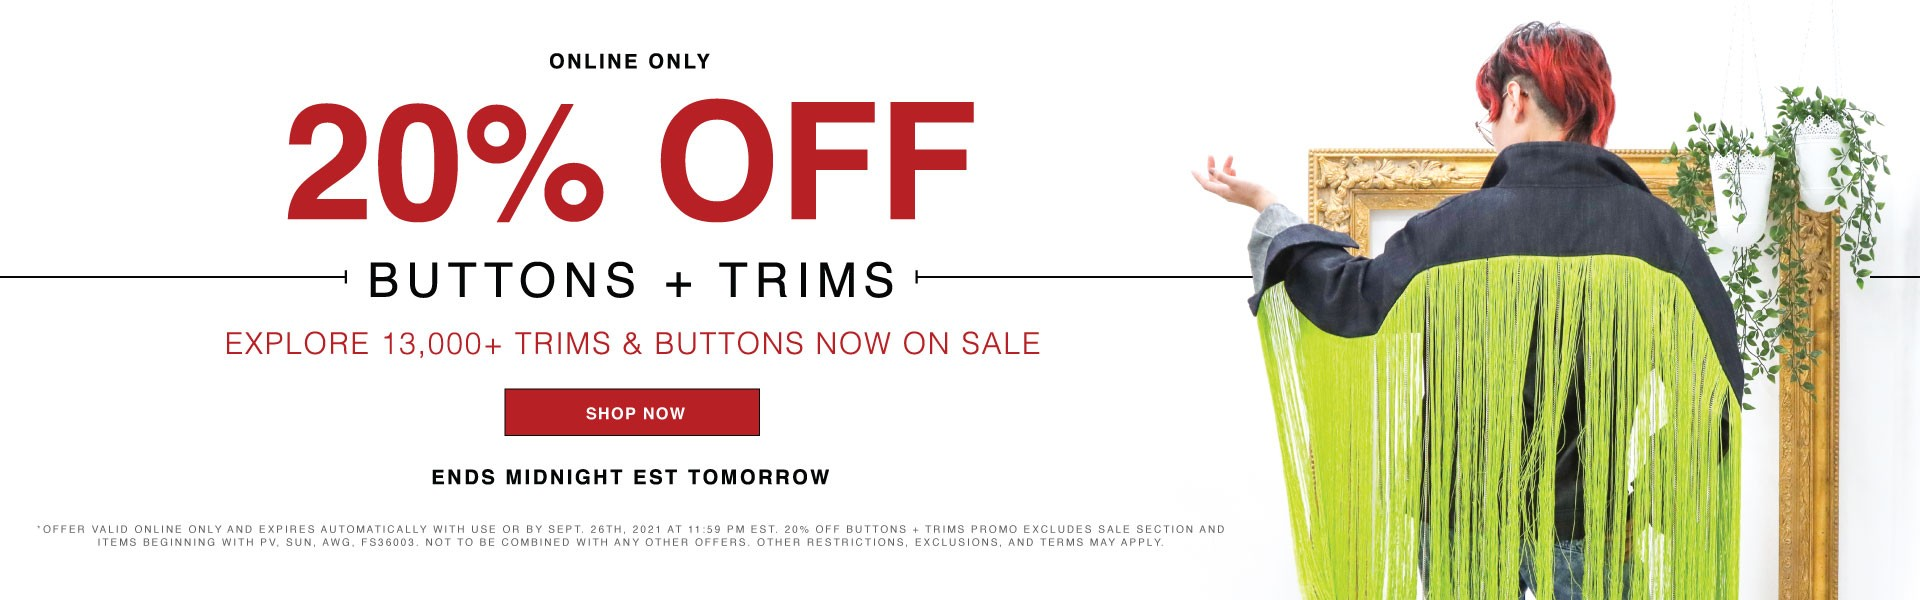 Shop 20% Off Trims & Buttons Today!